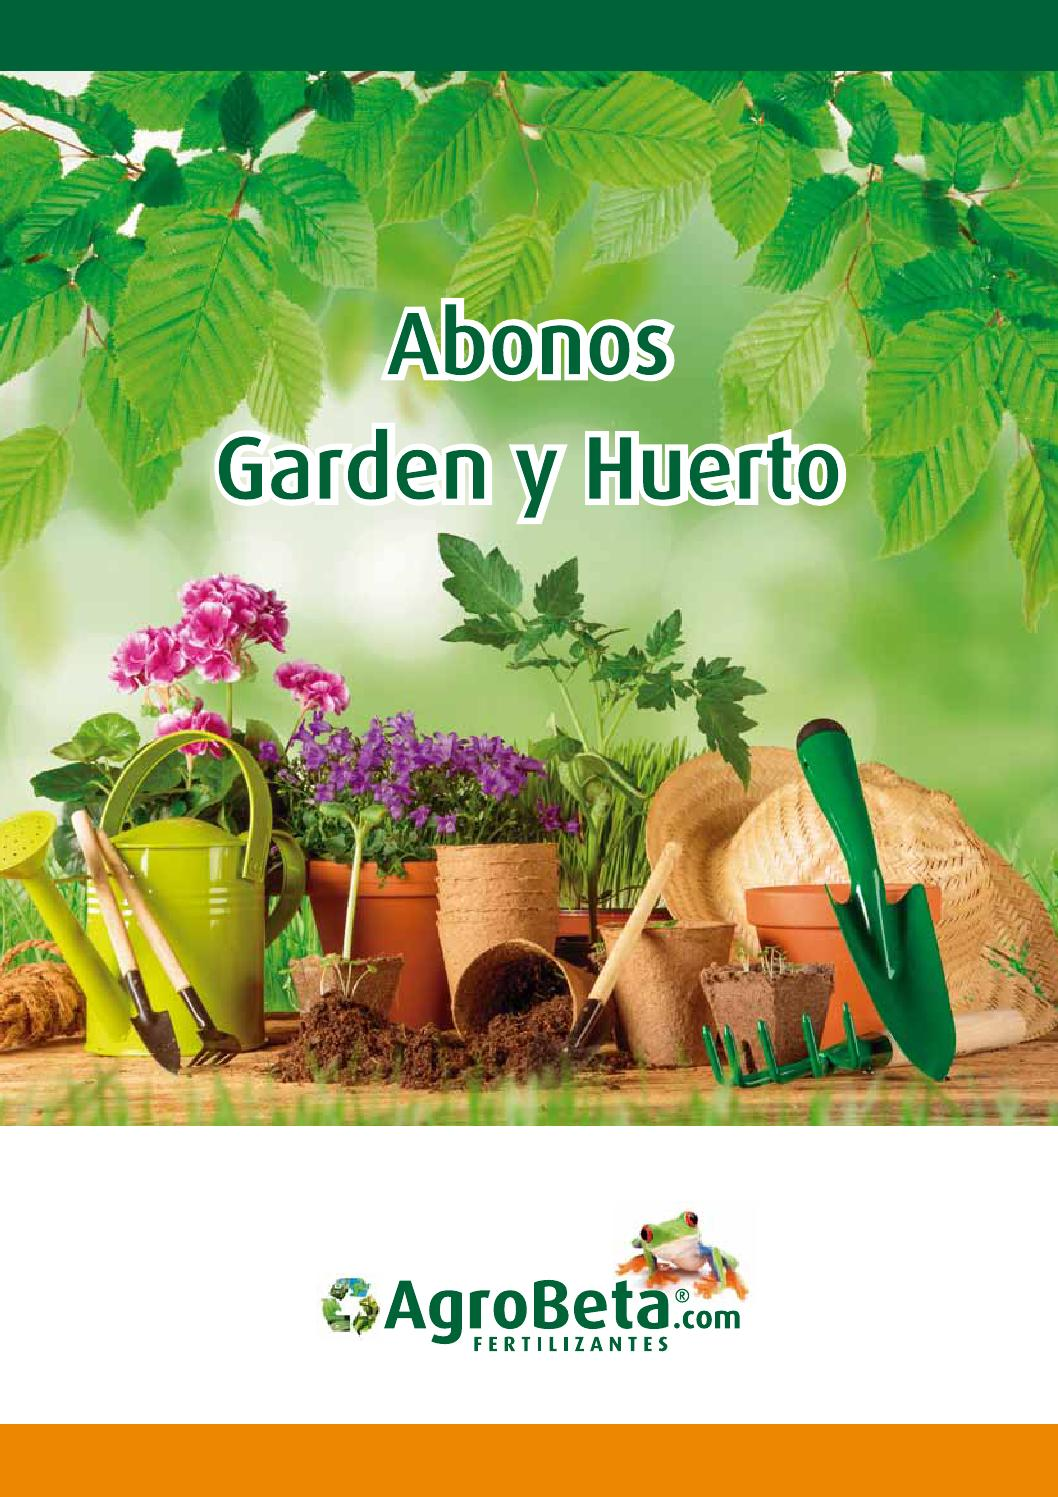 Catalogo jardin 2015 by jos manuel d az issuu for Cofac catalogo jardin 2015